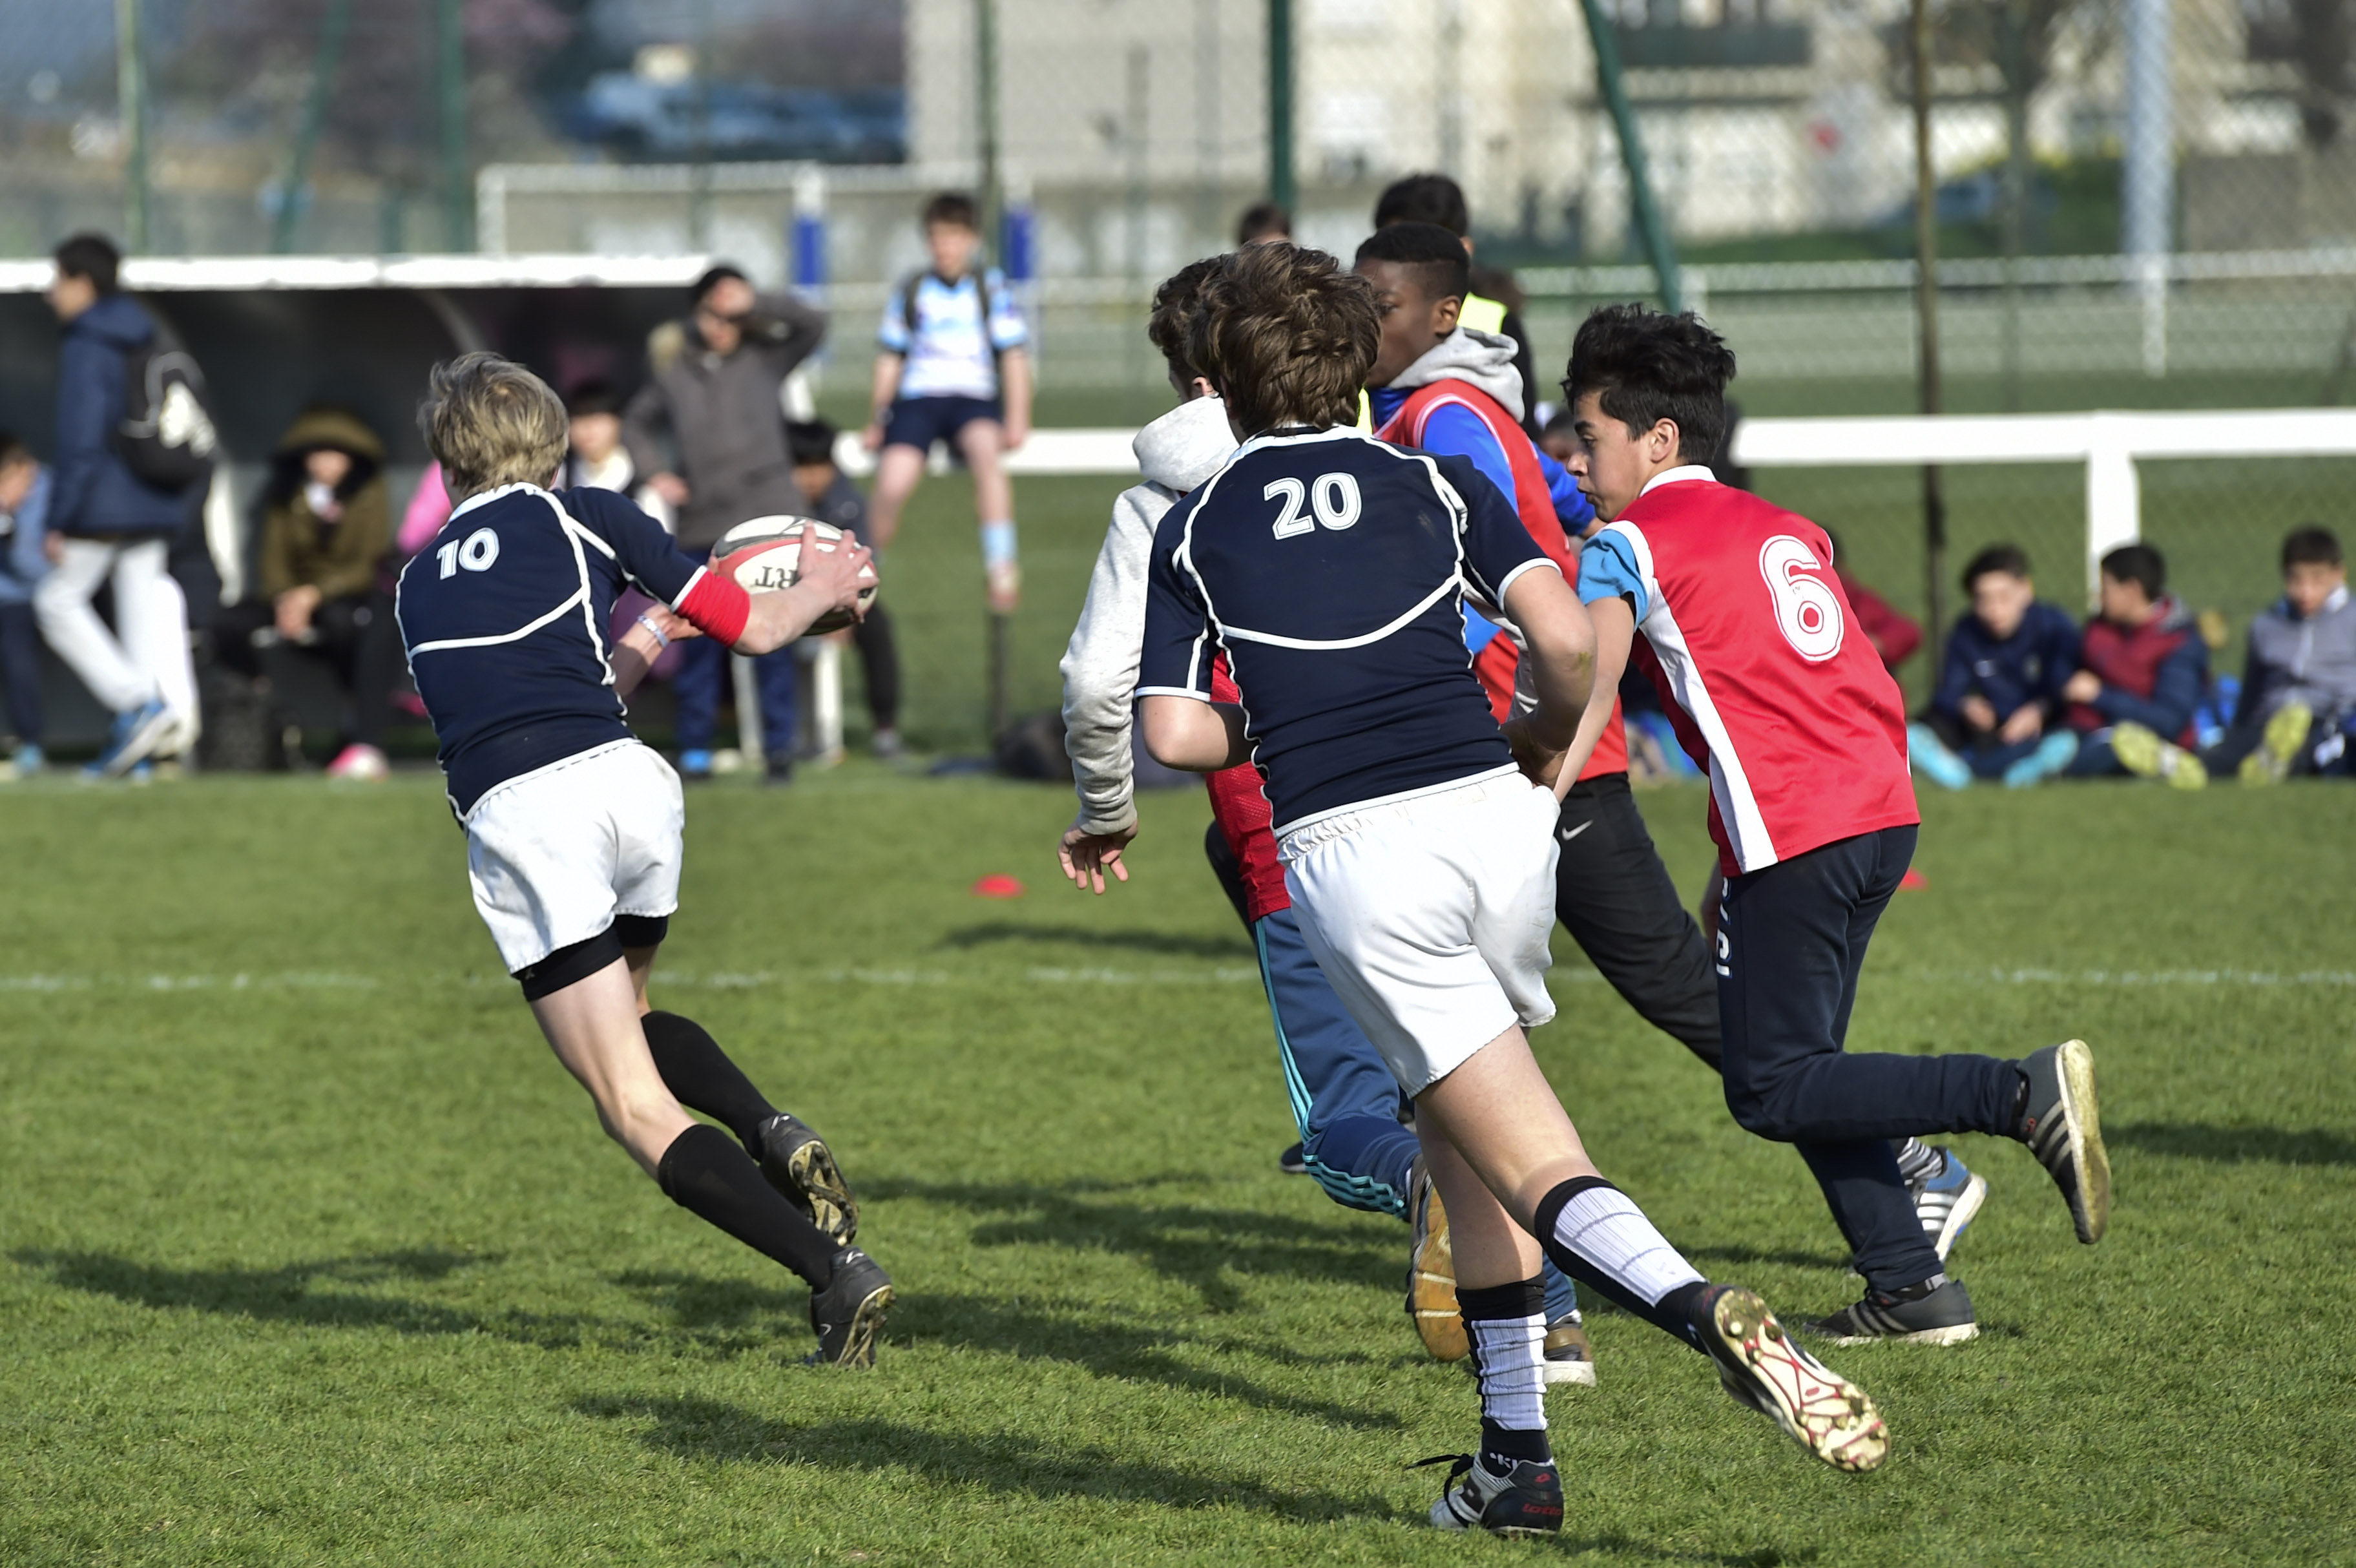 rencontre rugby gay à Courbevoie